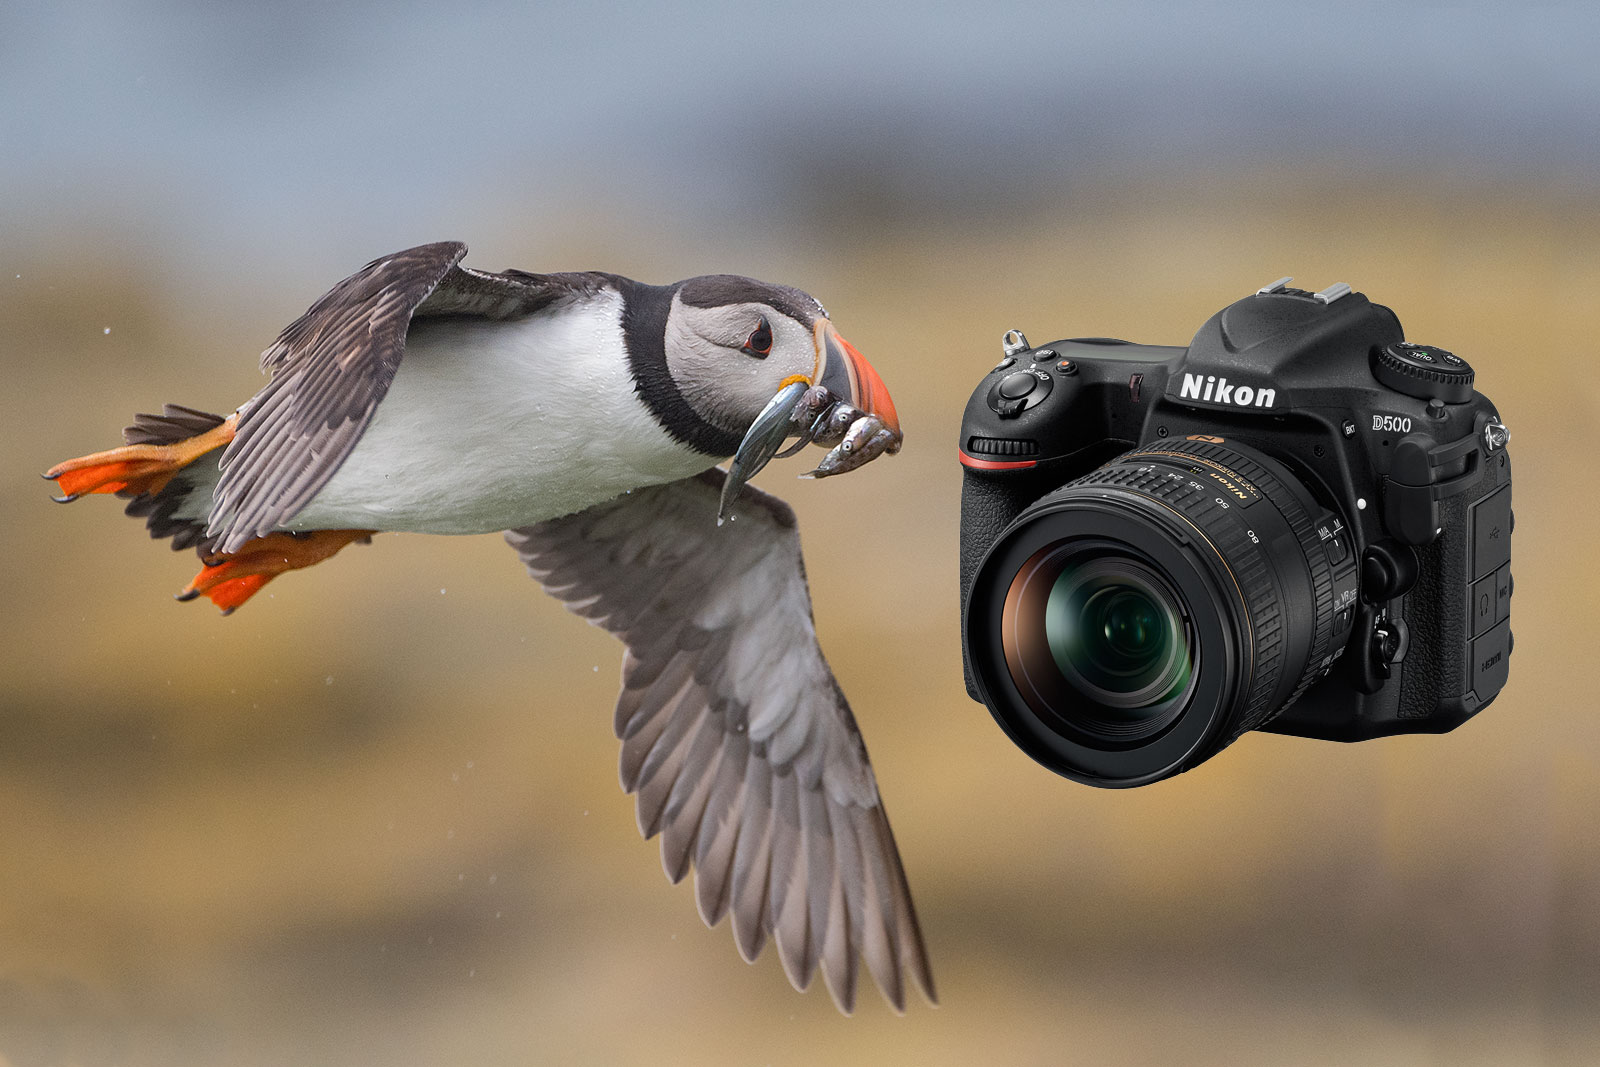 Nikon D500 Review In The Hands Of A Wildlife Photographer